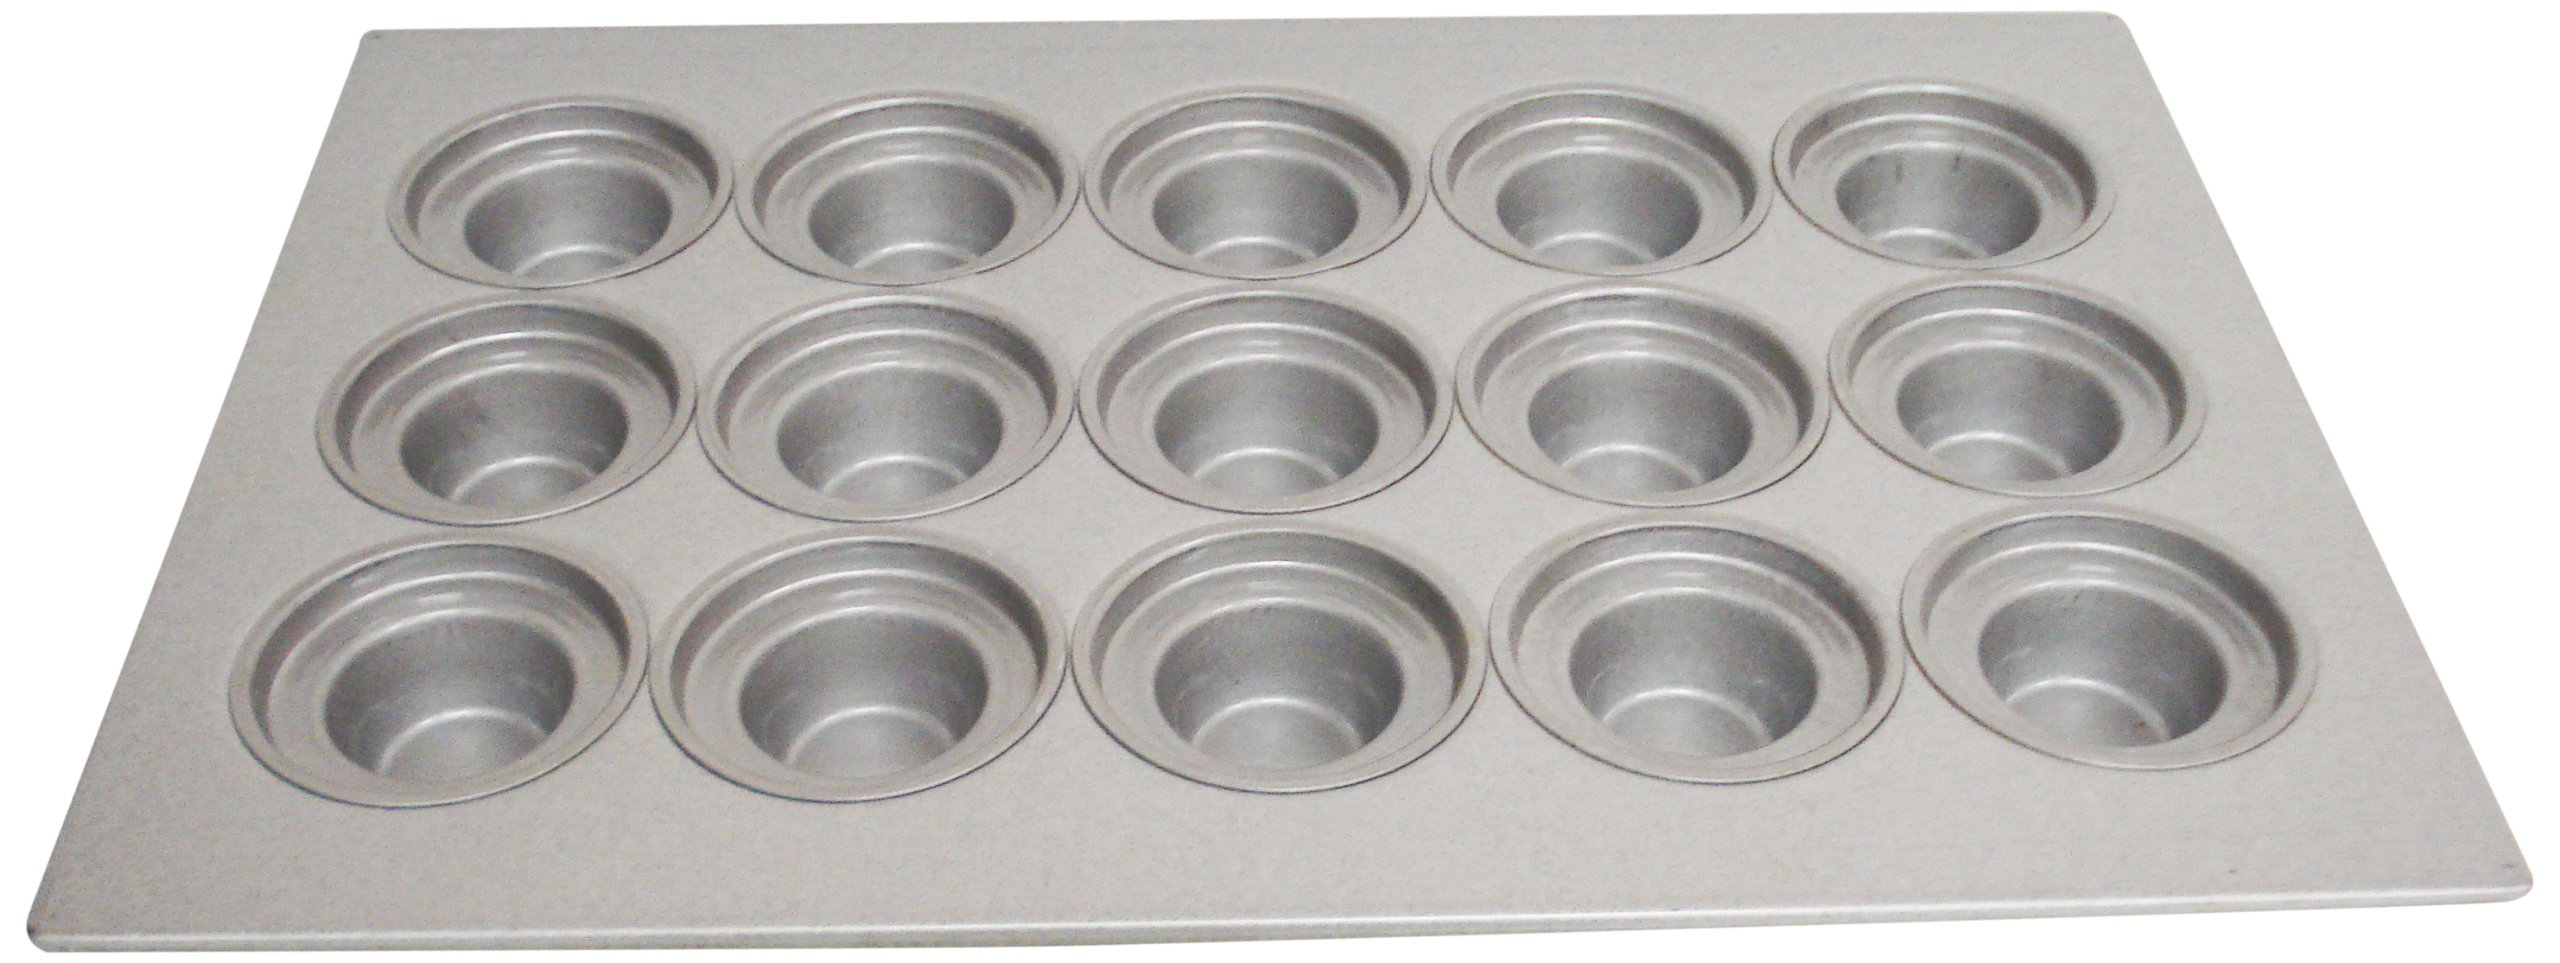 Magna Industries 15344 22-Gauge Aluminized Steel Crown Top Large Muffin Pan, 4-1/8'' Diameter, 3 x 5 Cups Layout (Pack of 6)